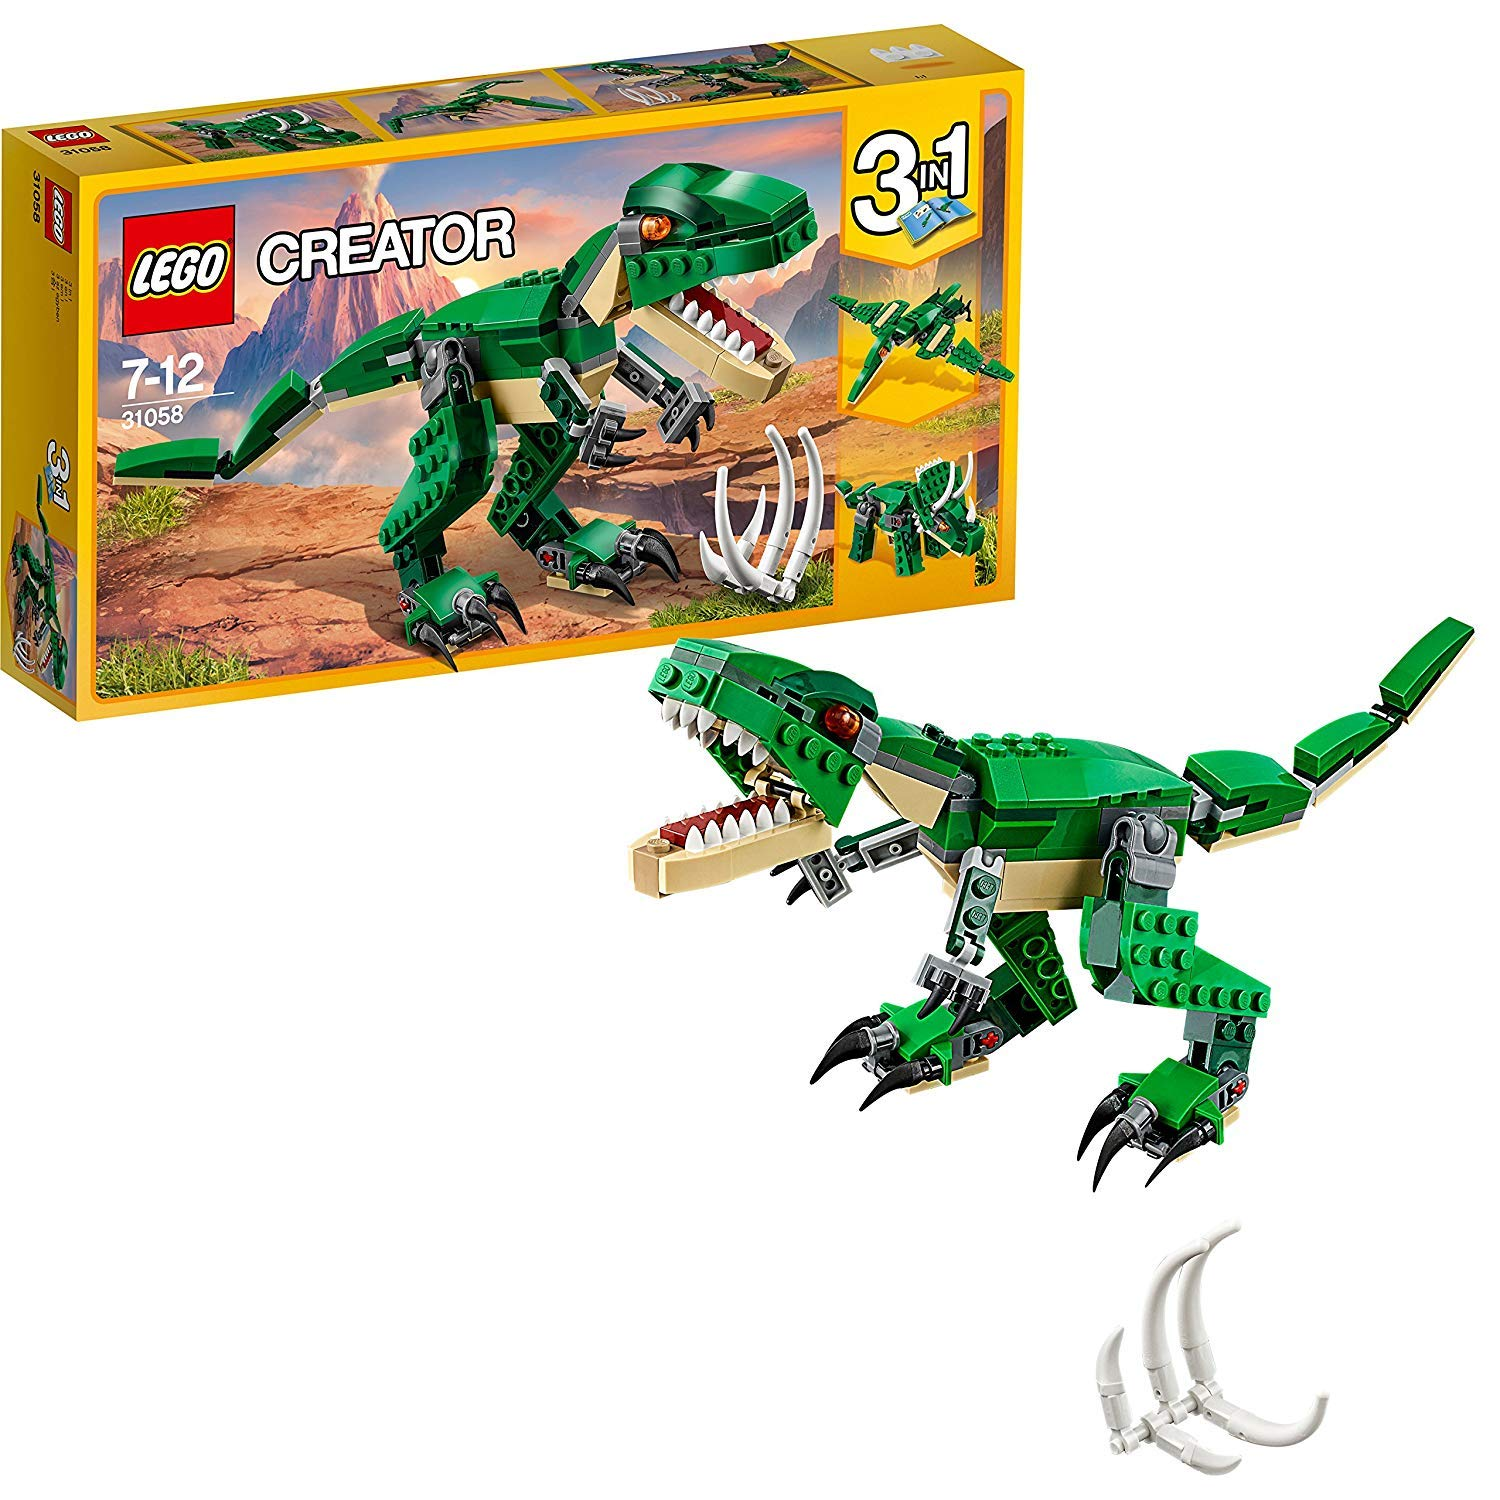 LEGO 31058 Creator Mighty Dinosaurs Toy,  Triceratops and Pterodactyl Dinosaur Figures